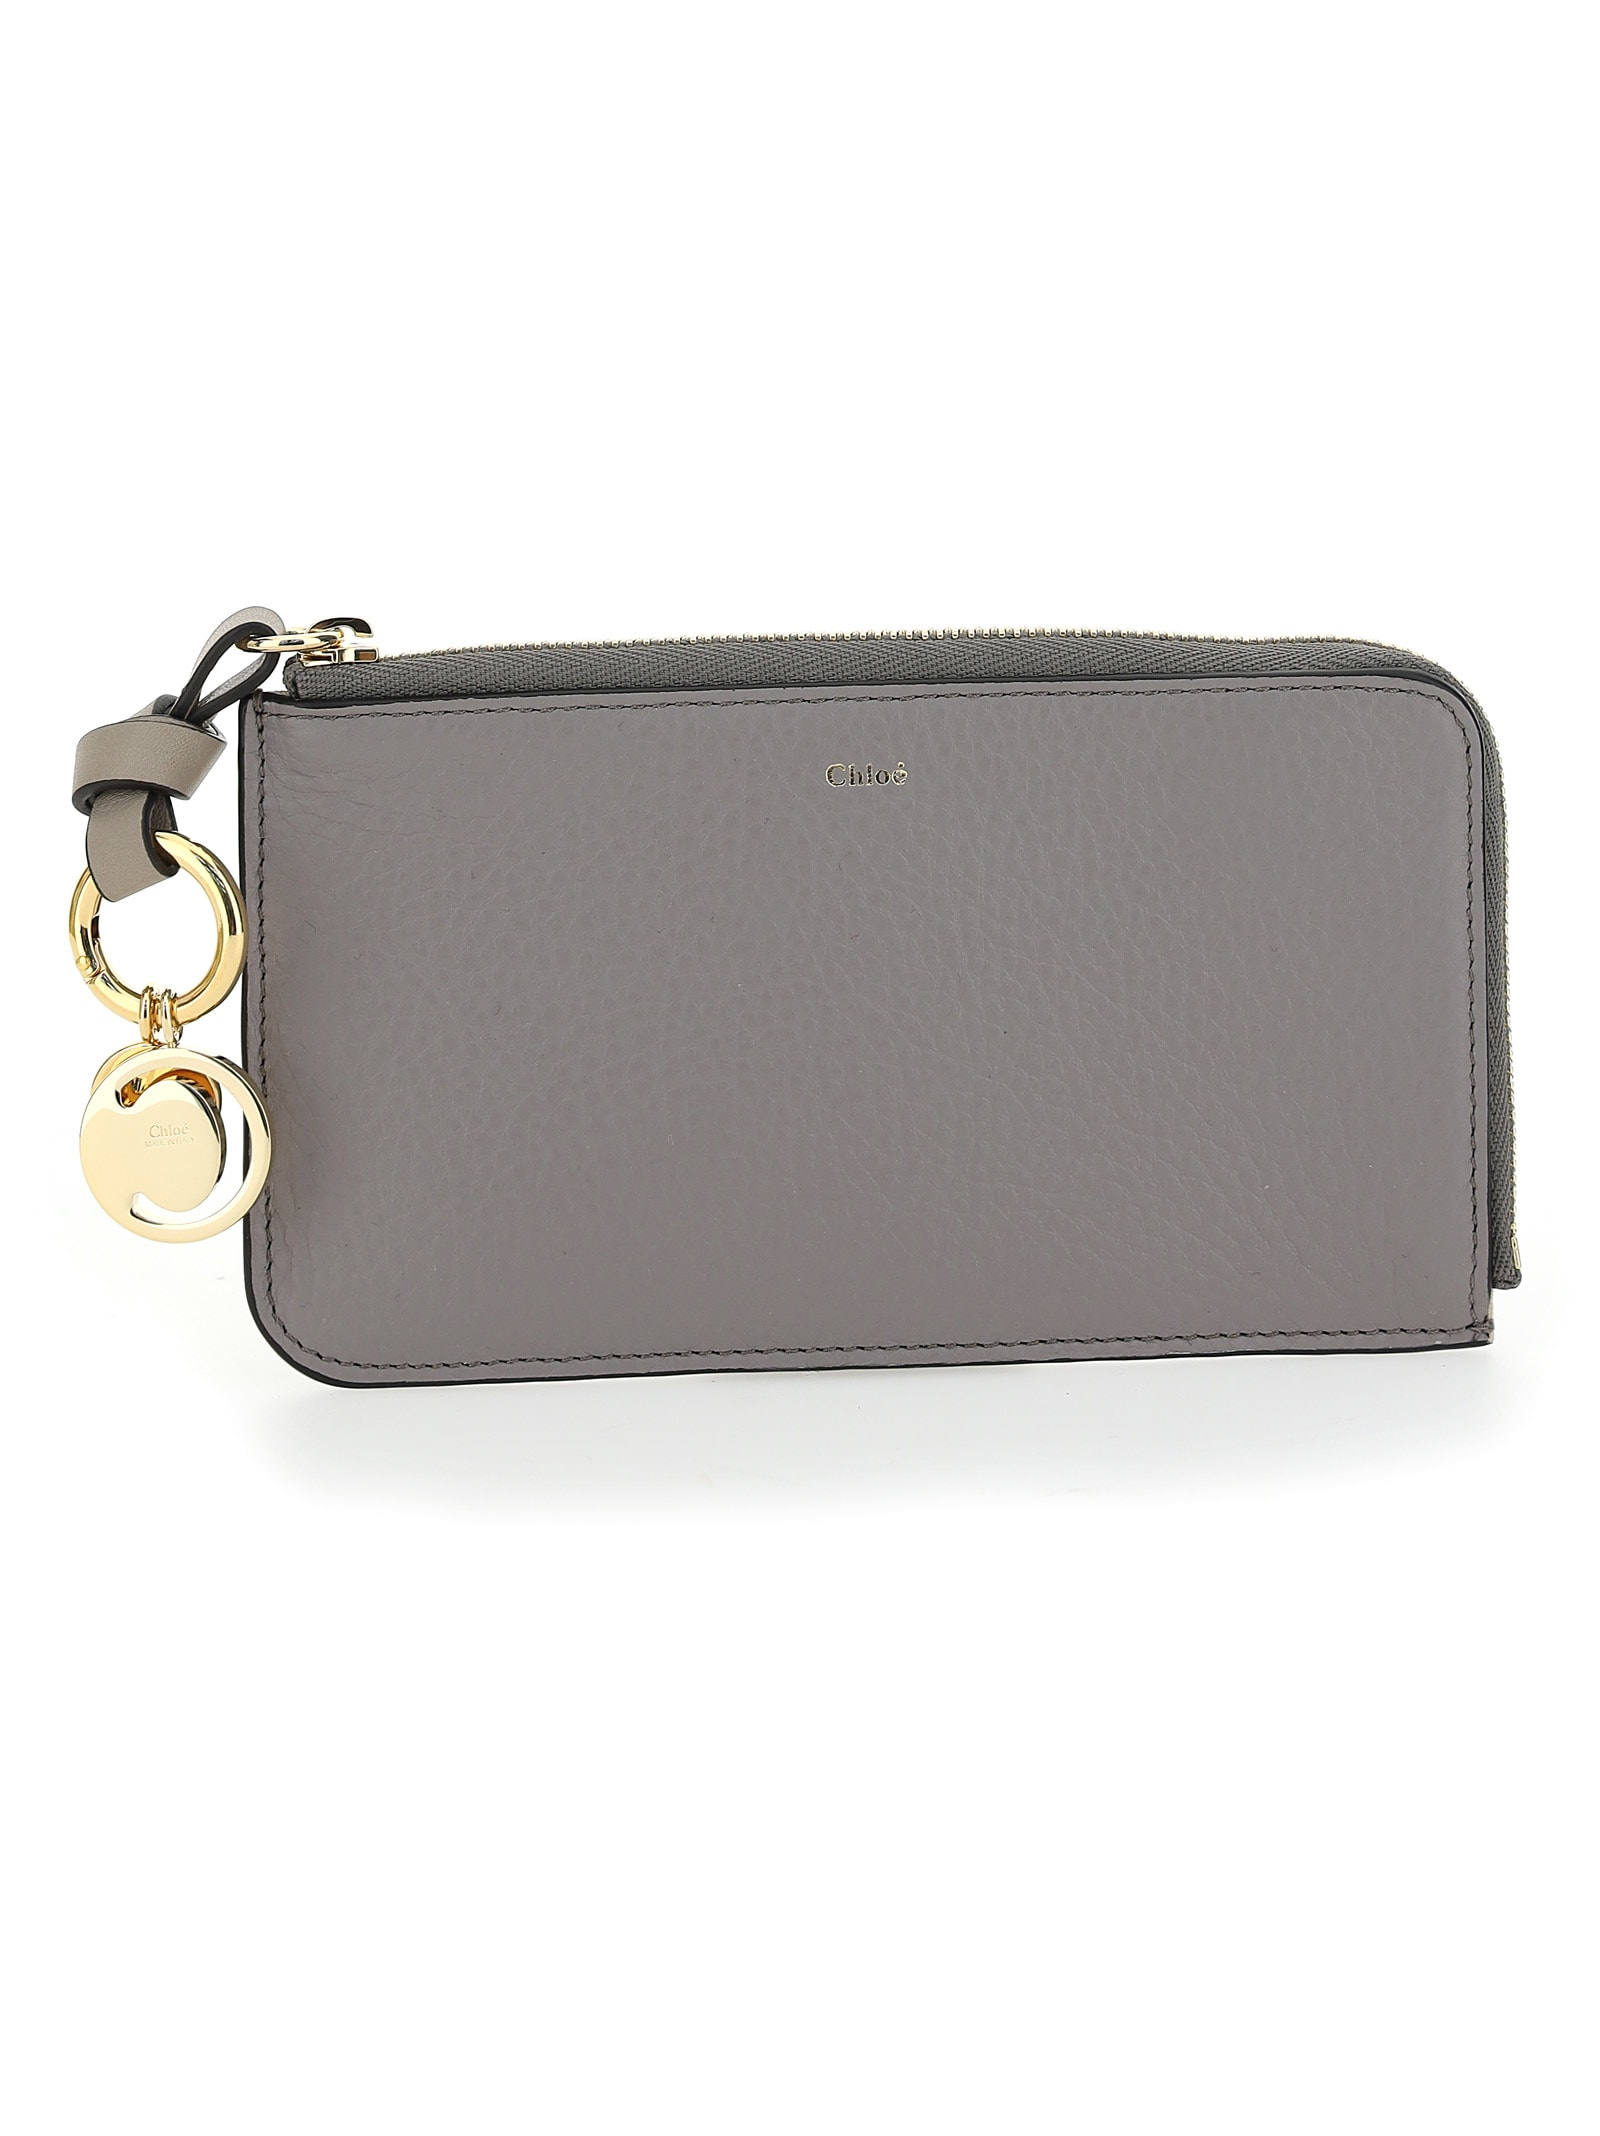 Chloé COIN PURSE